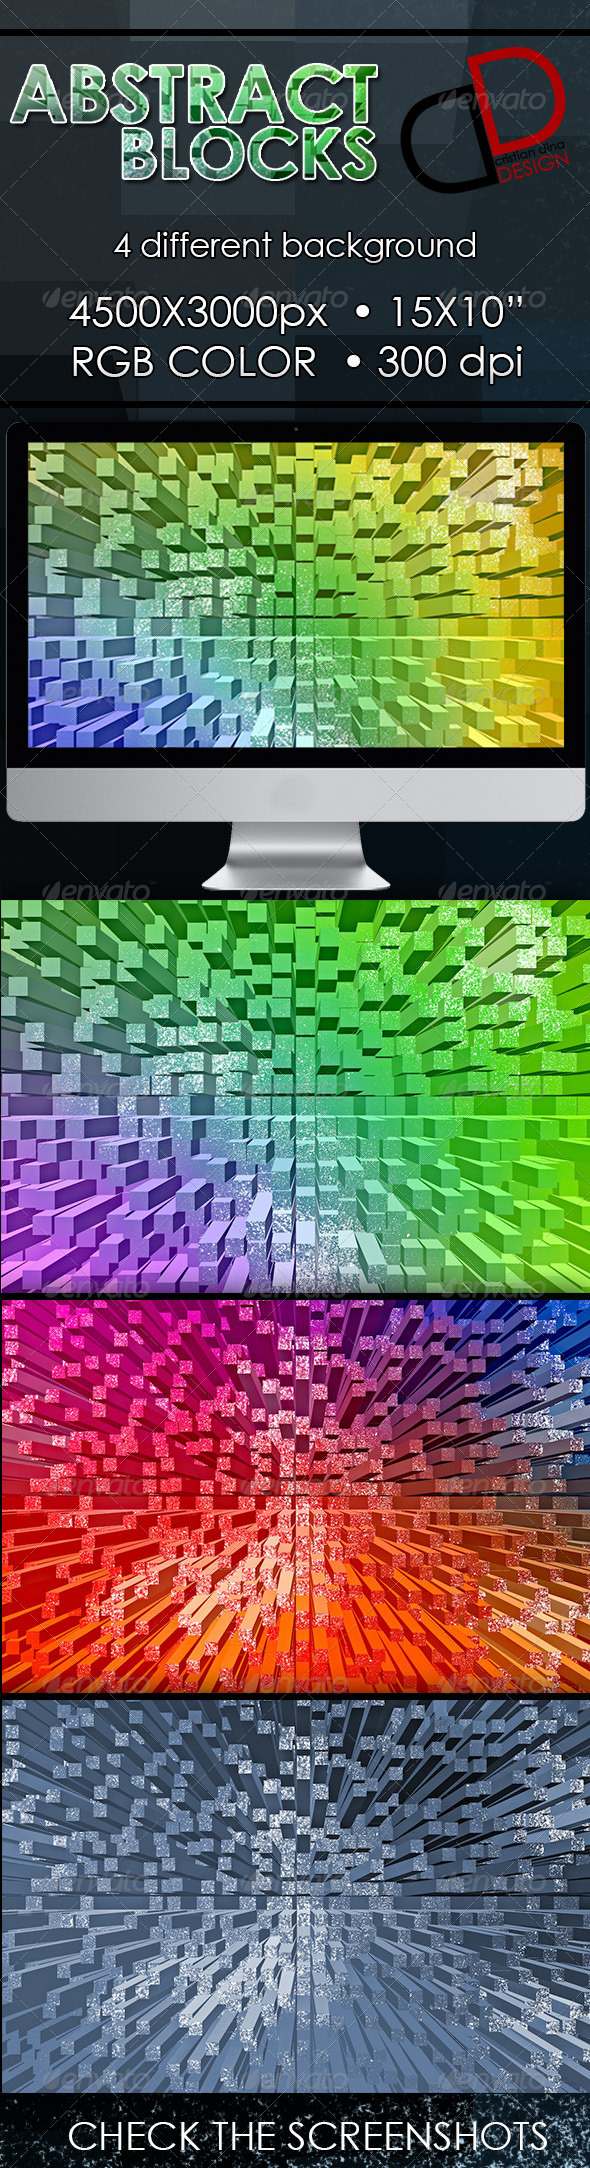 GraphicRiver Abstract Blocks Backgrounds 6535237